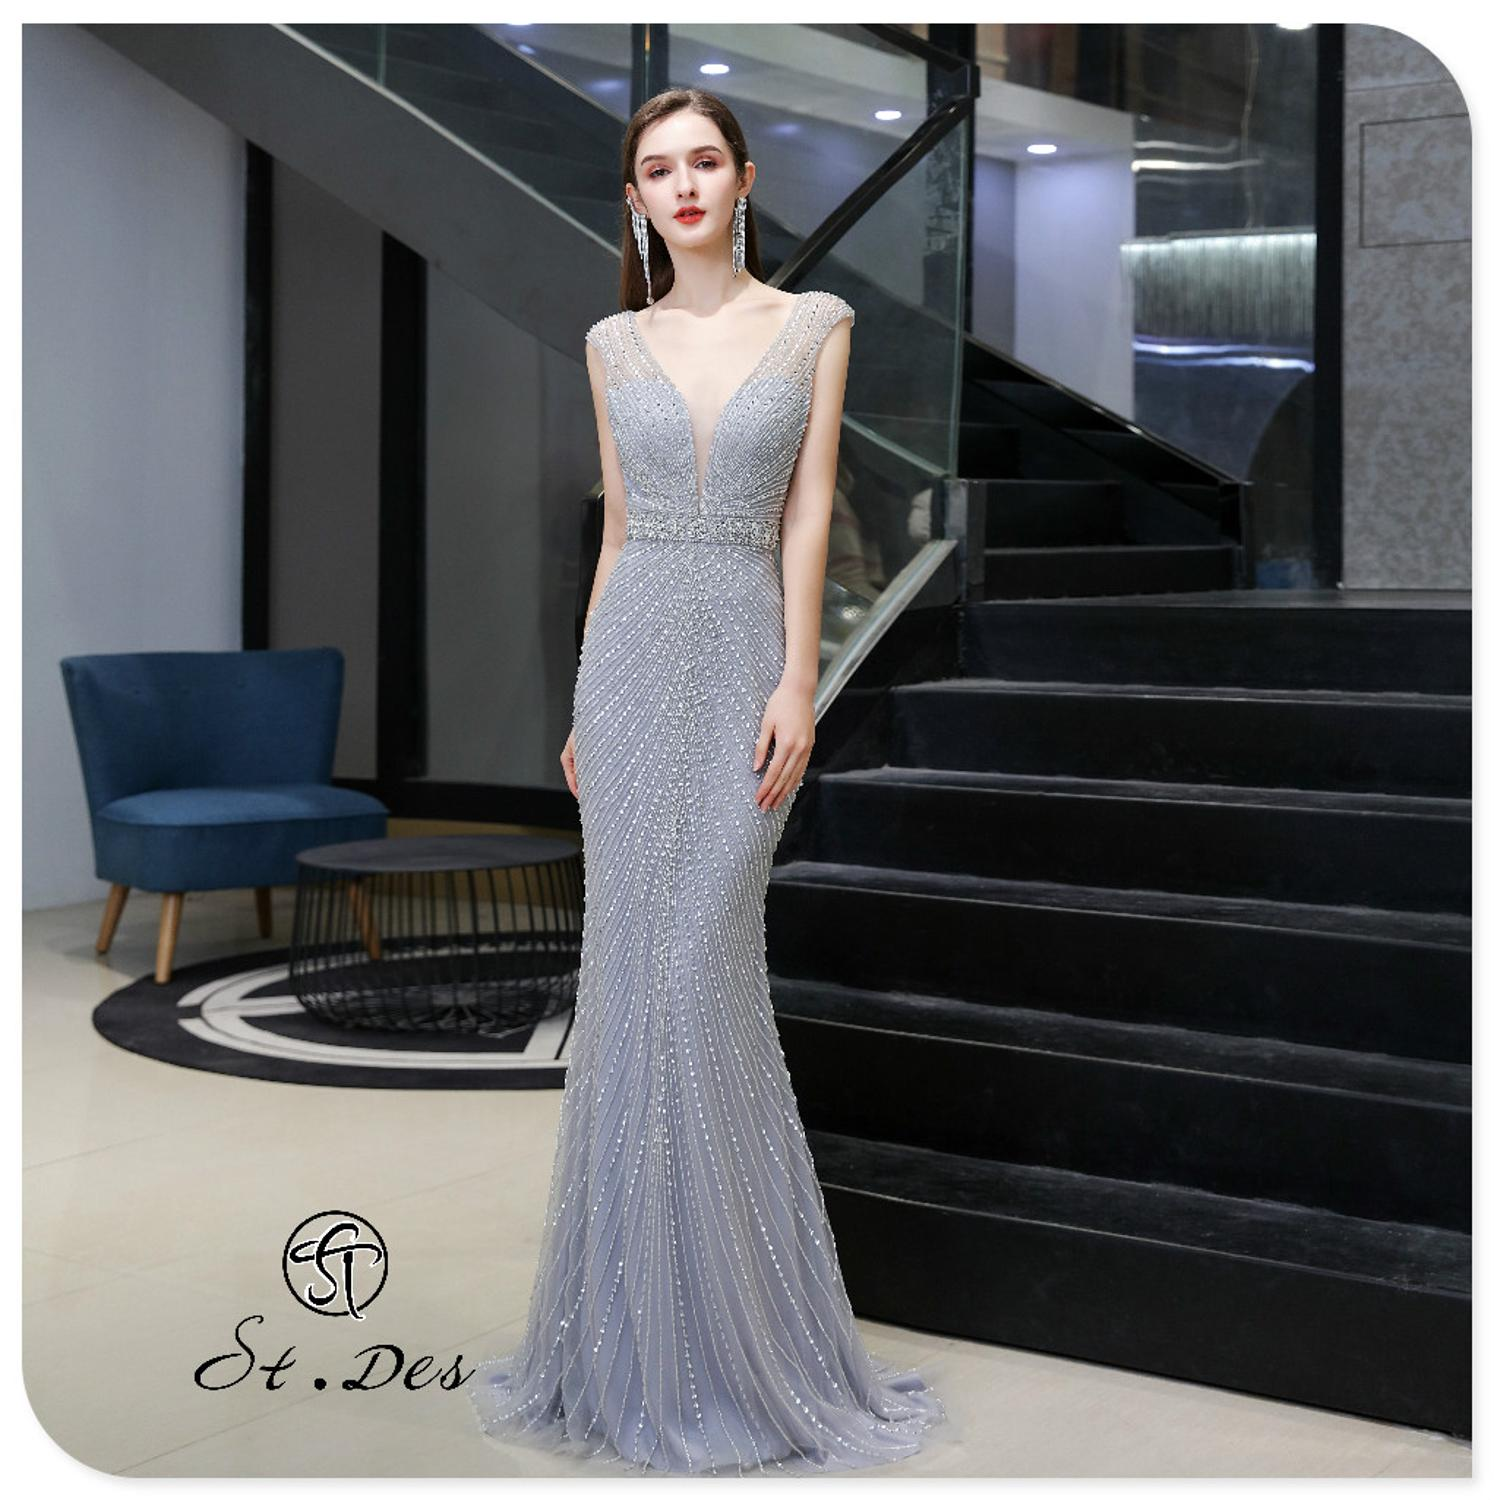 S.T.DES Evening Dress 2020 New Arrival V-neck Mermaid Sleeveless Floor Length Party Dress Dinner Gowns